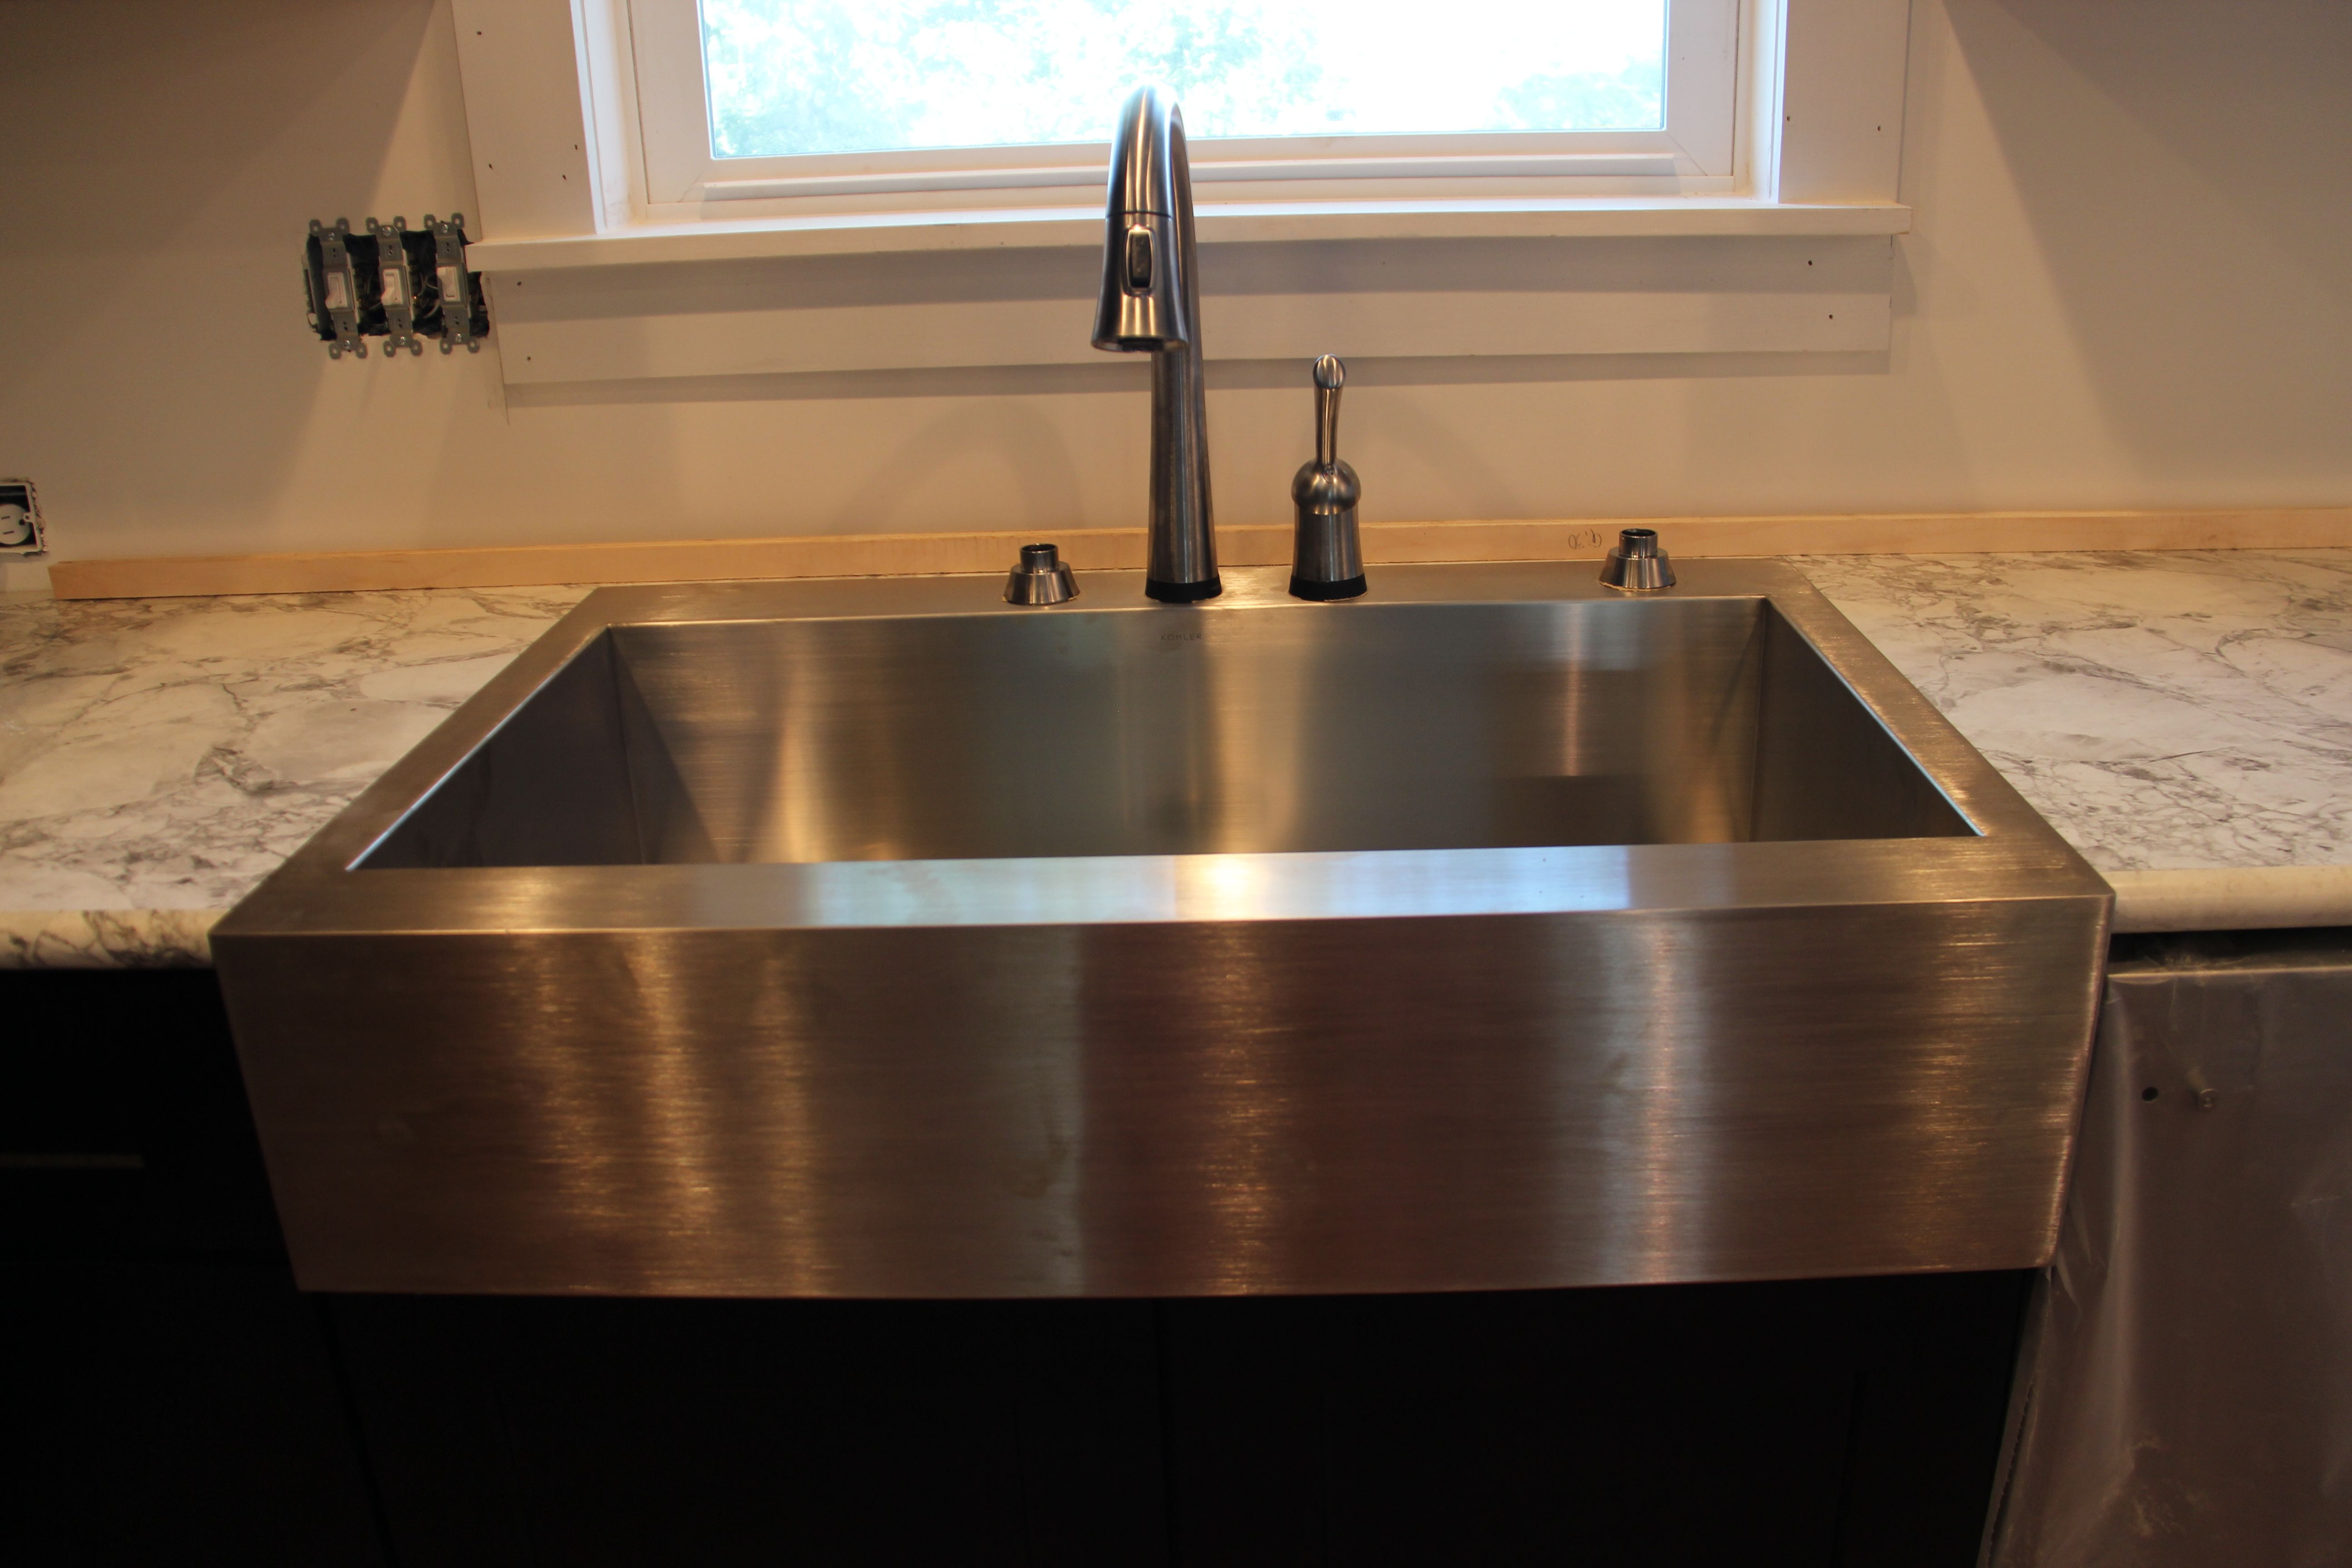 How To Install Kitchen Sink In New Countertop Apron Front Sink With Laminate Countertop Kitchen Ideas